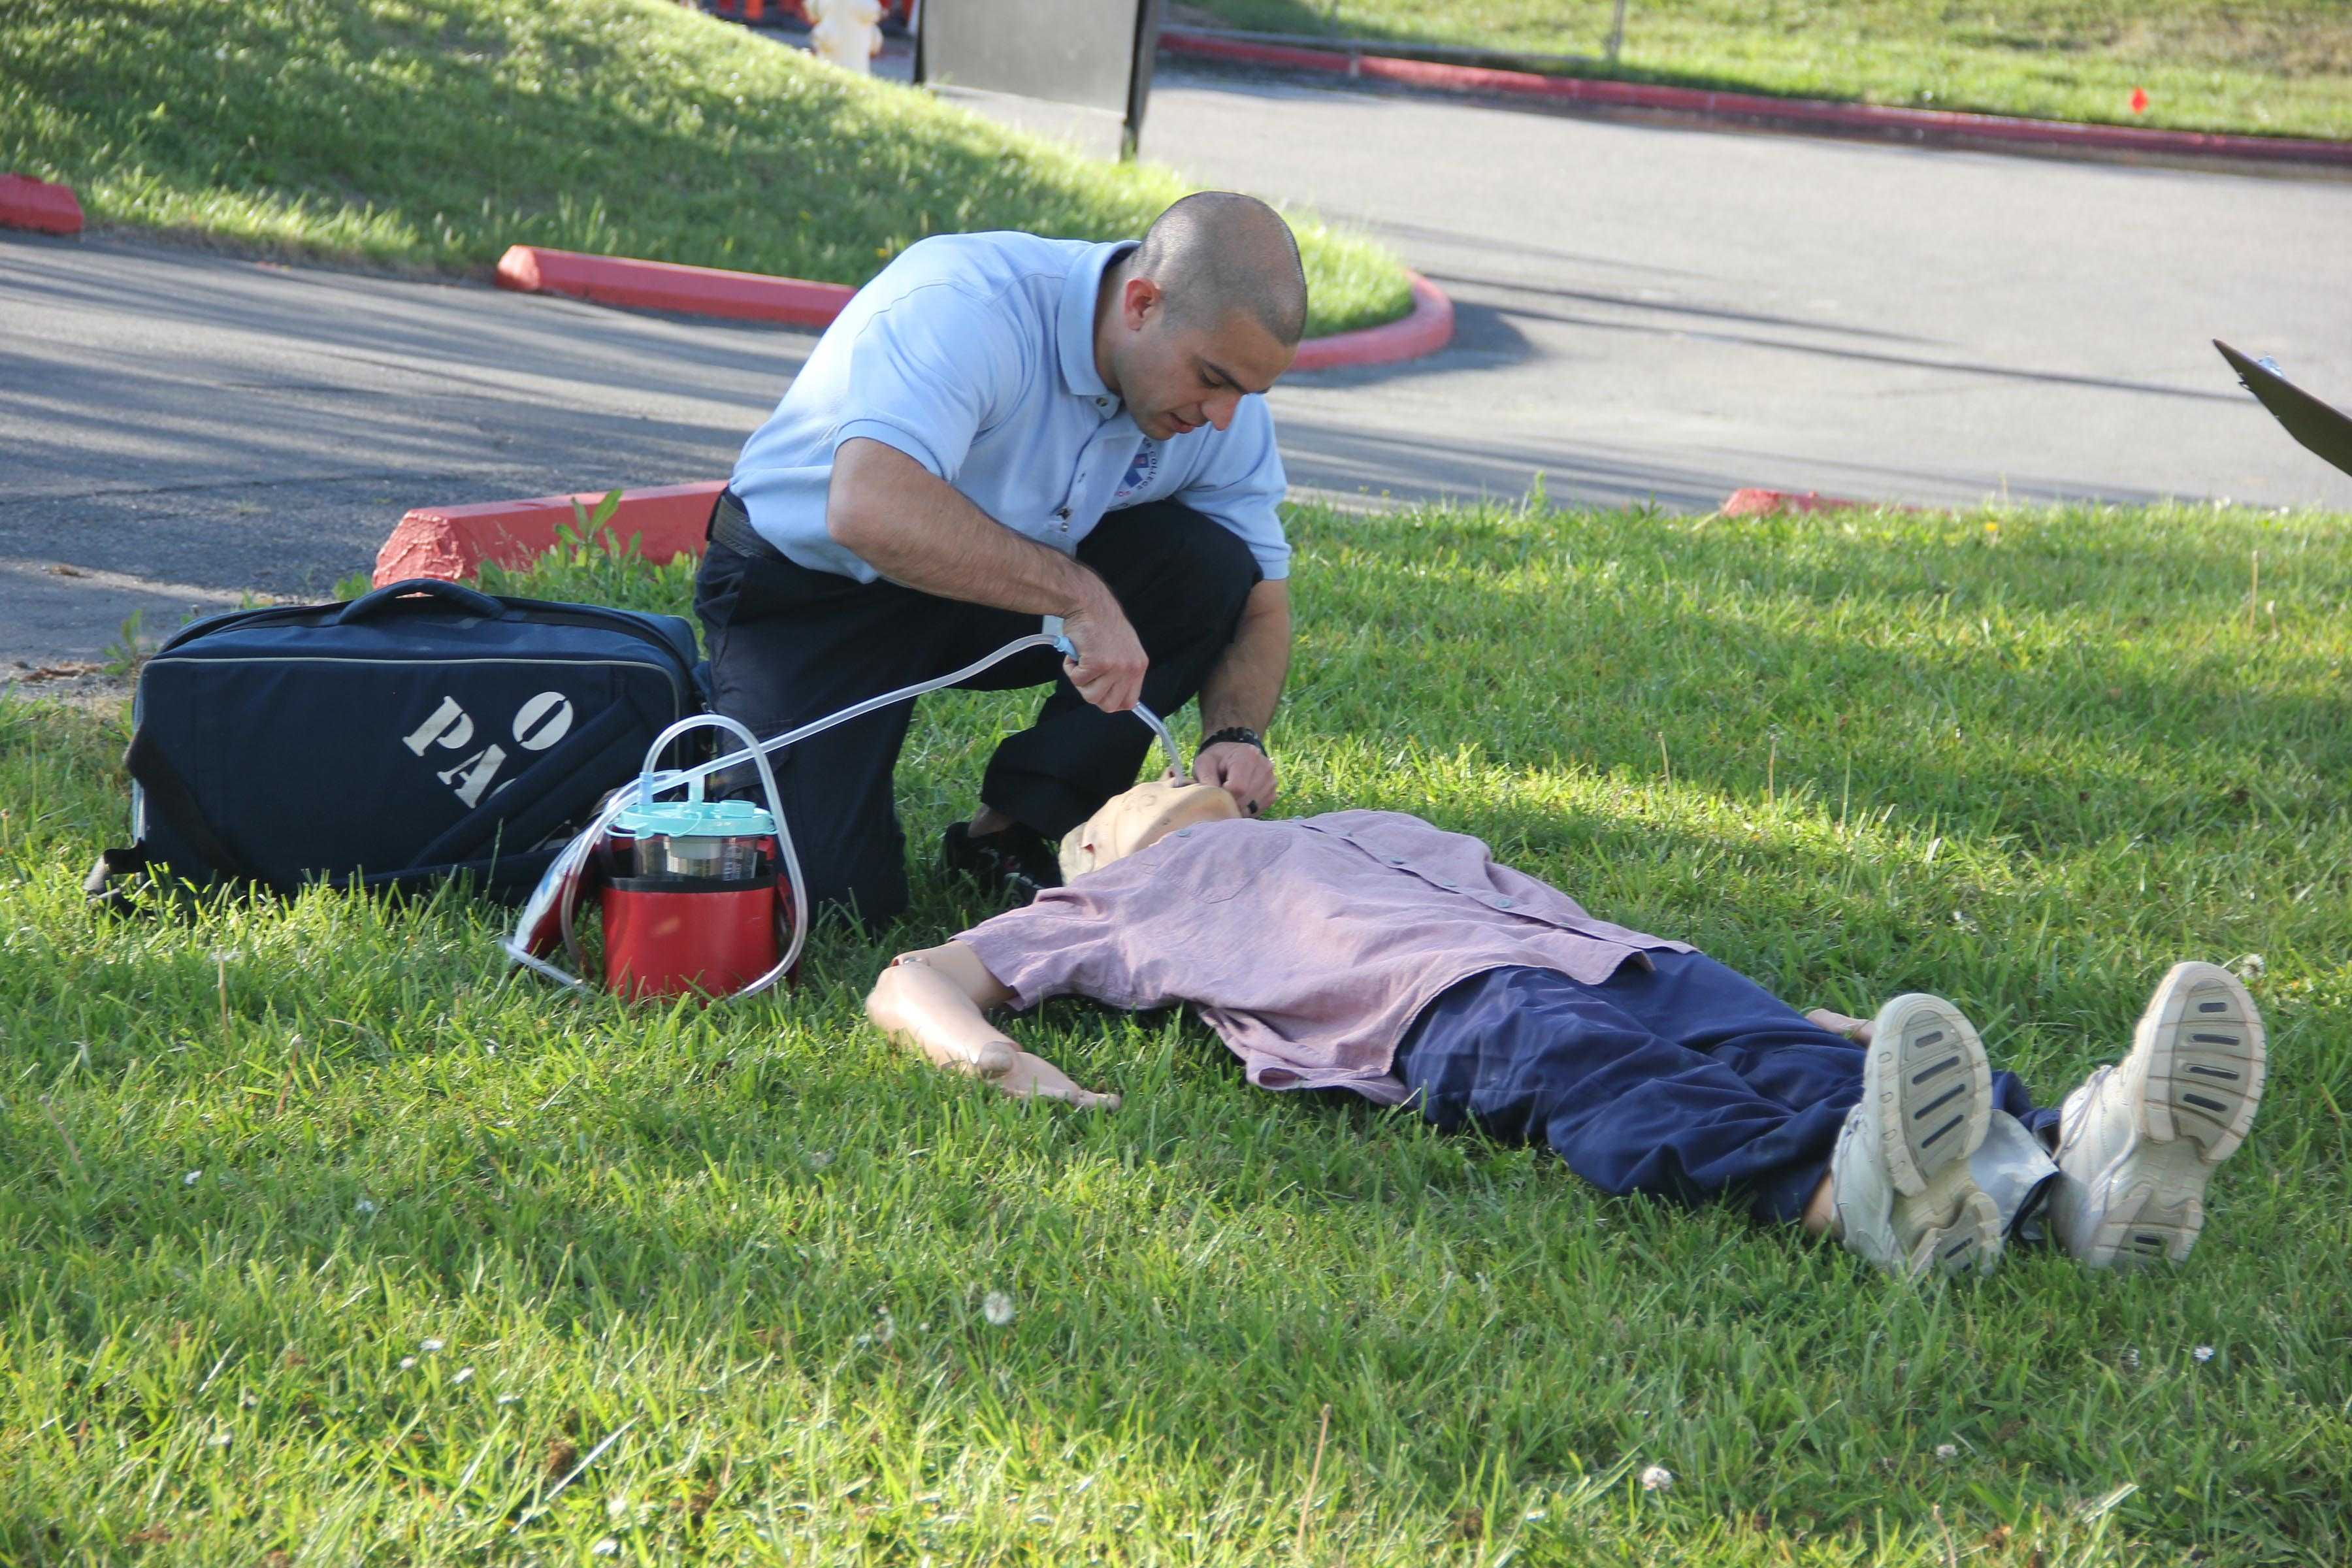 EMT student practices skills  that they will need in the field. The EMT program gives students a chance to practice real situations so they are confident in their career field.